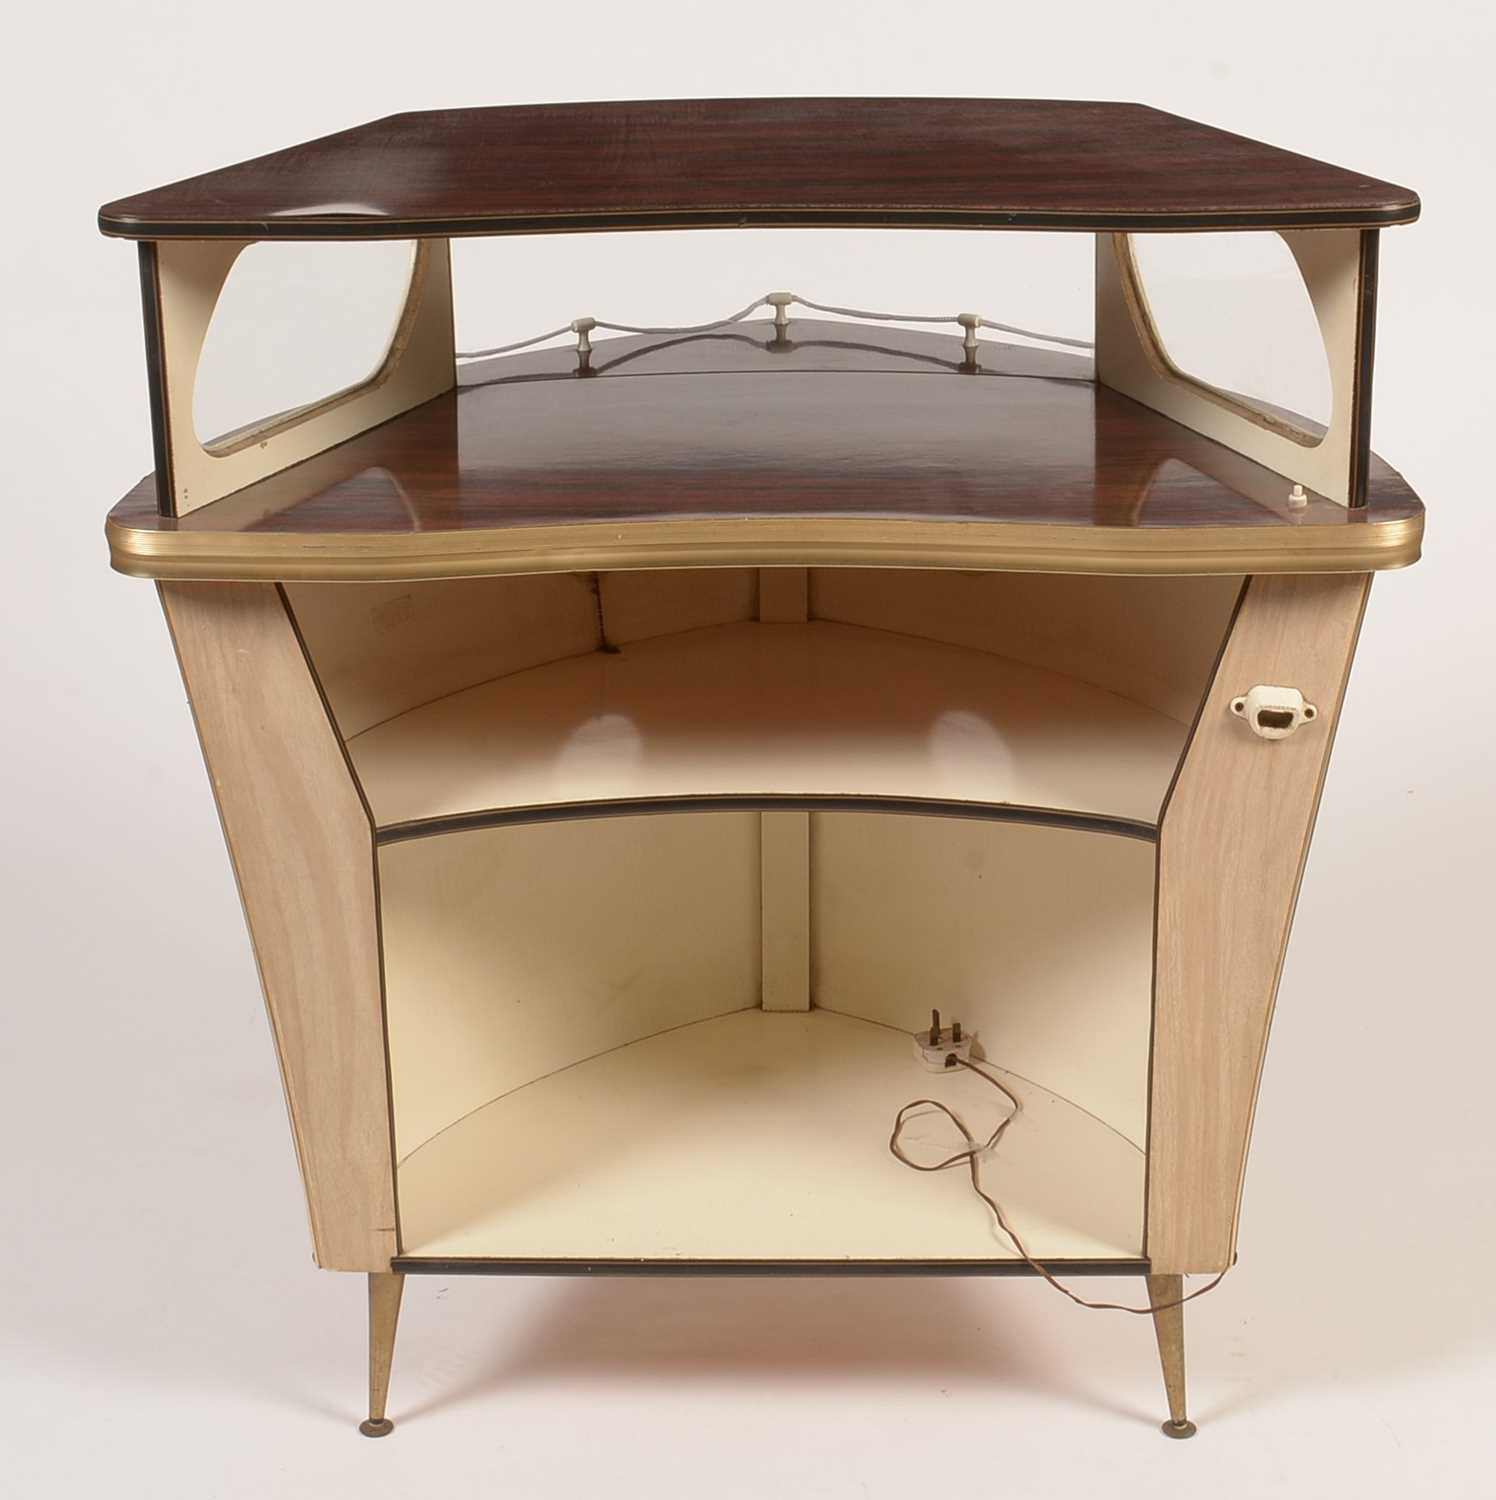 Umberto Mascagni, Bologne, Italy: a mid 20th Century boat form cocktail bar. - Image 5 of 5